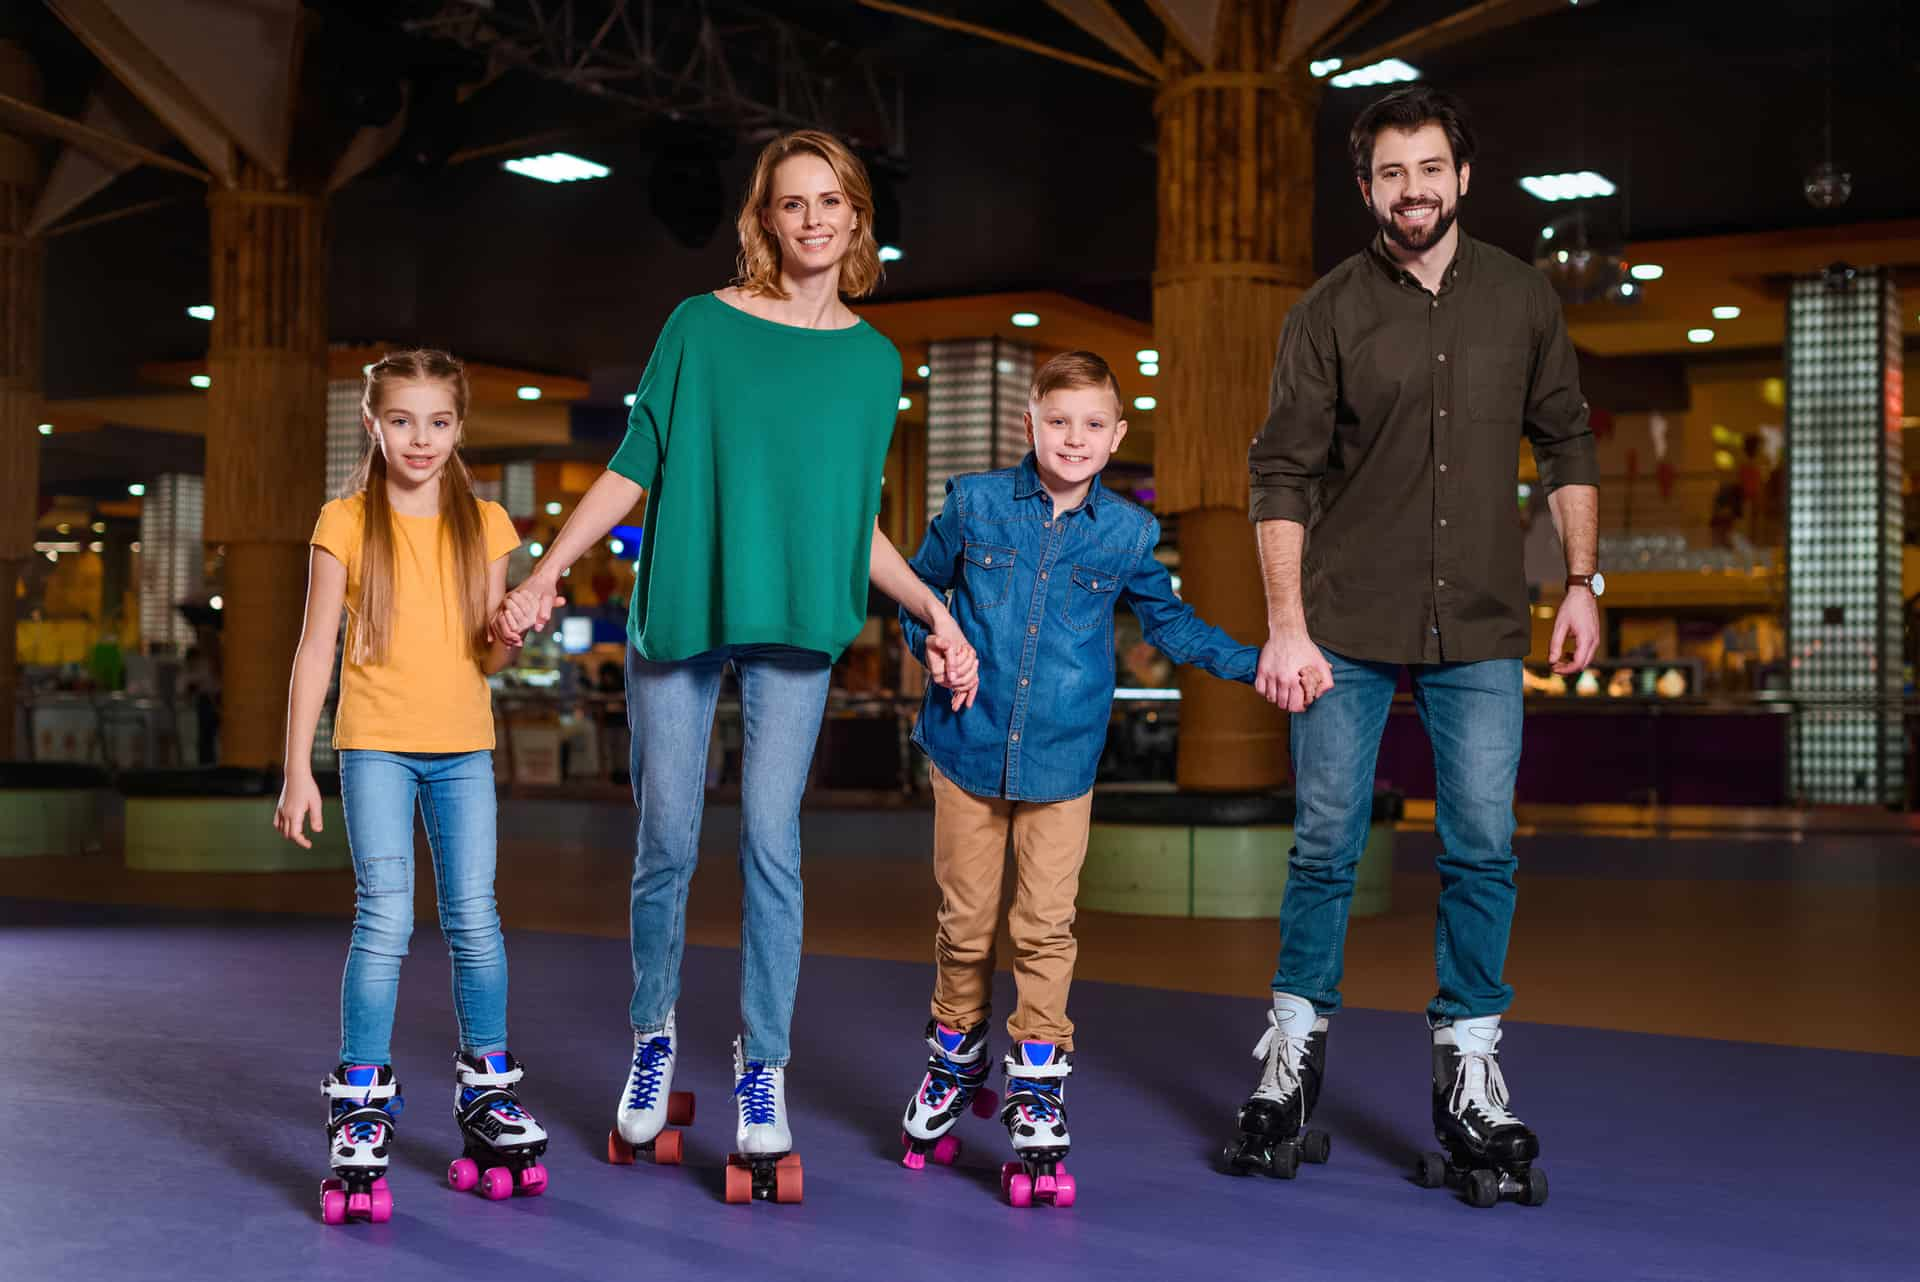 There's a Pop-up Roller Rink Coming to Southgate Centre and You're Going to Want to Bring Your Kids